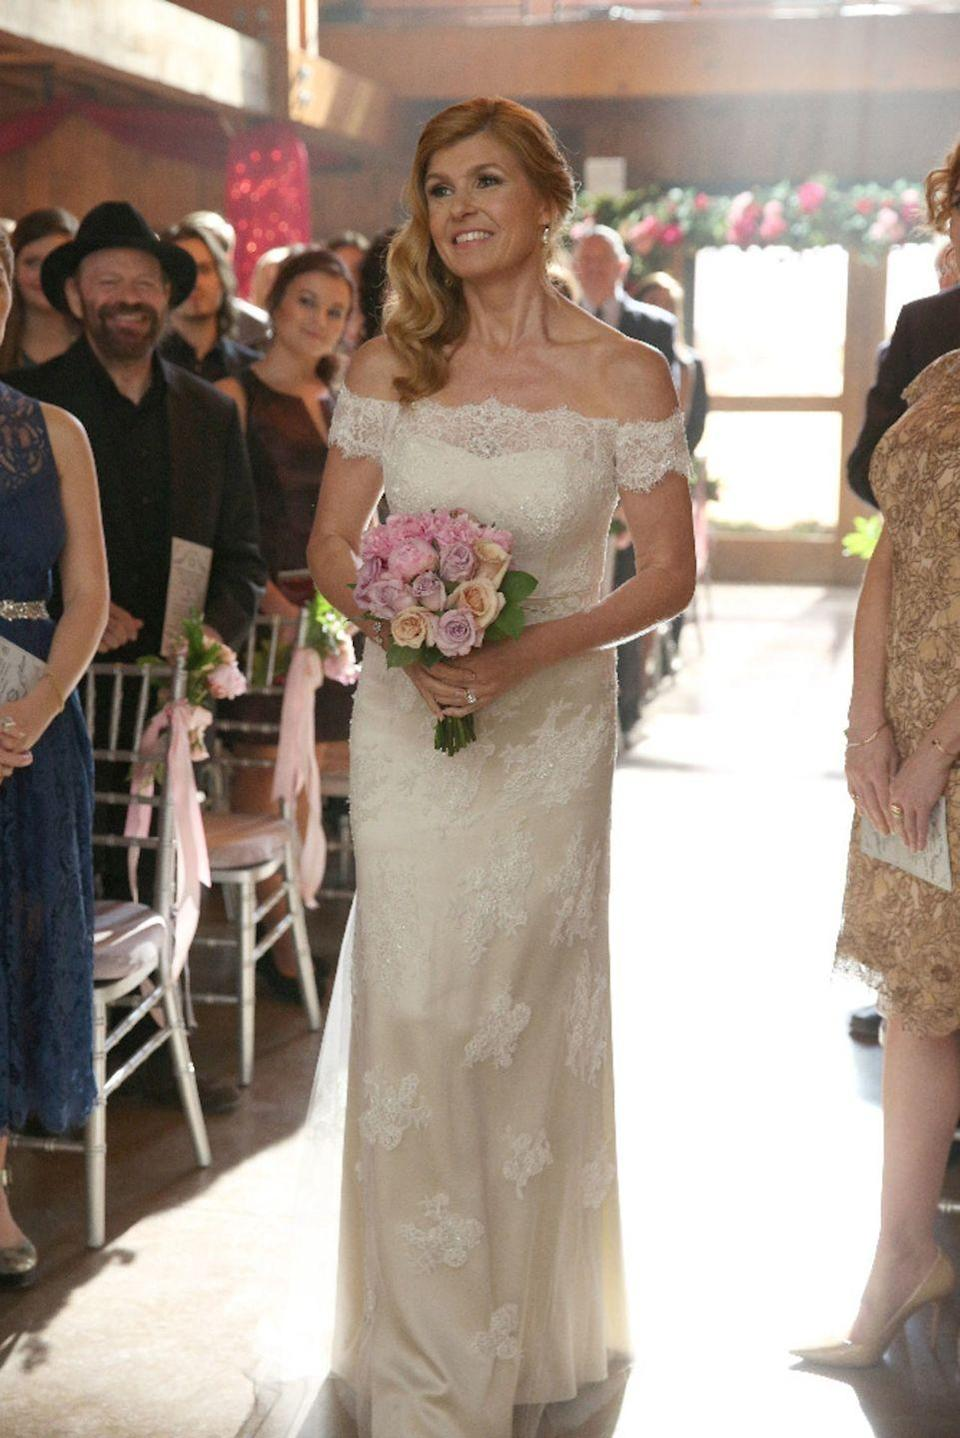 <p>In season 4, Rayna James exchanged vows with Deacon Claybourne wearing an off-the-shoulder wedding dress with lace with her hair swept to one side. </p>